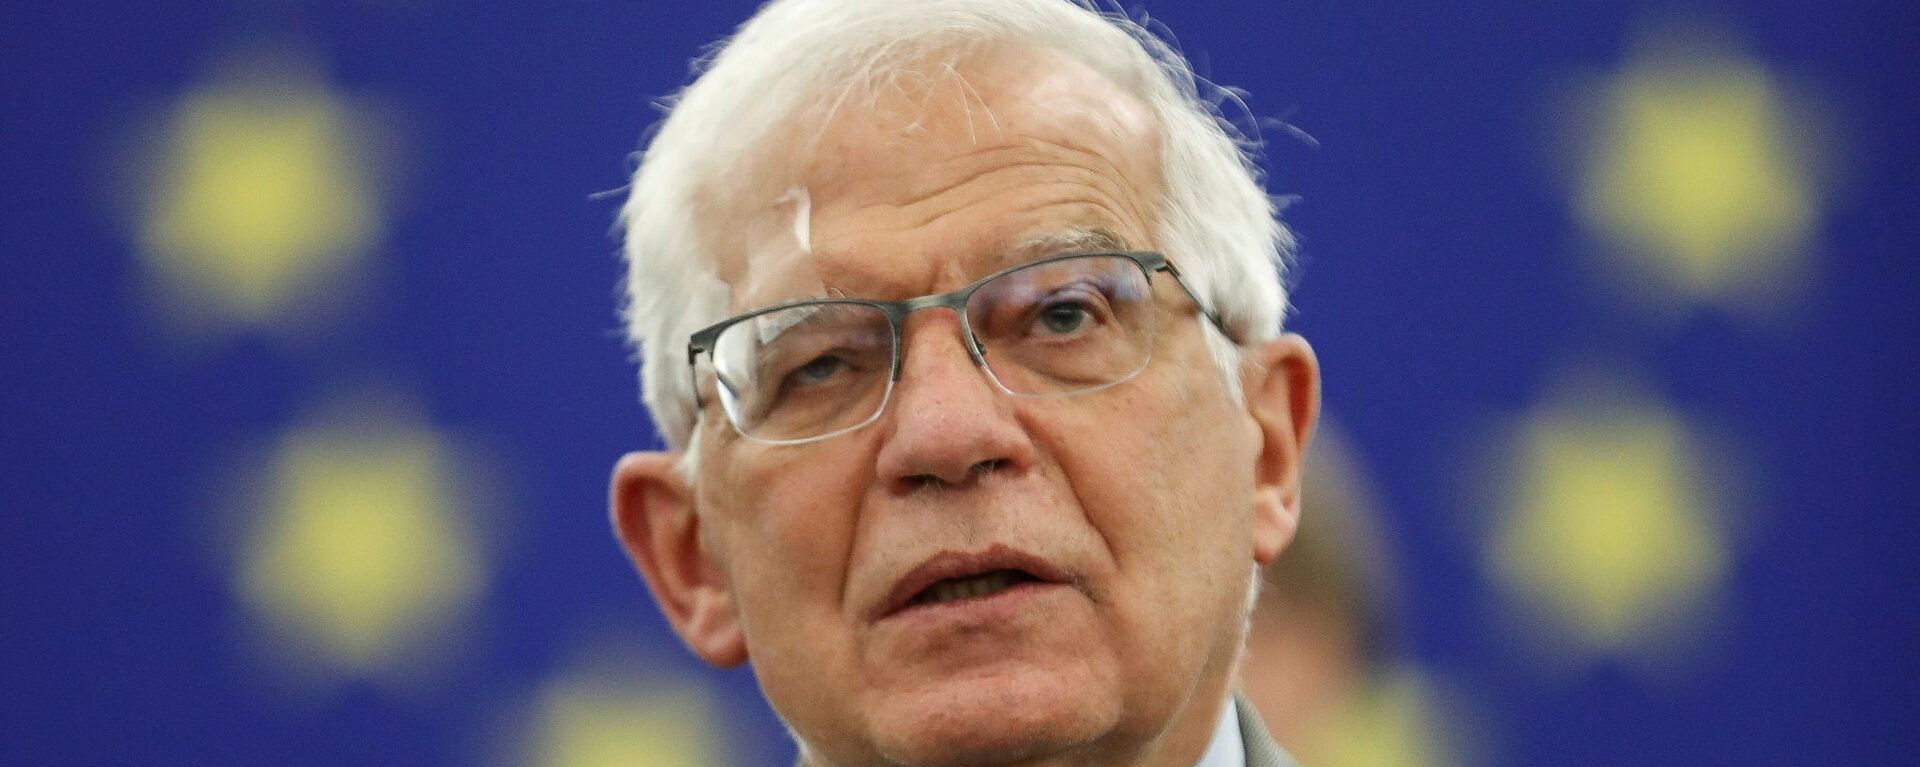 FILE PHOTO: Josep Borrell, vice president of the European Commission in charge of coordinating the external action of the European Union, delivers a speech at the European Parliament, in Strasbourg, France, June 8, 2021 - Sputnik International, 1920, 08.09.2021